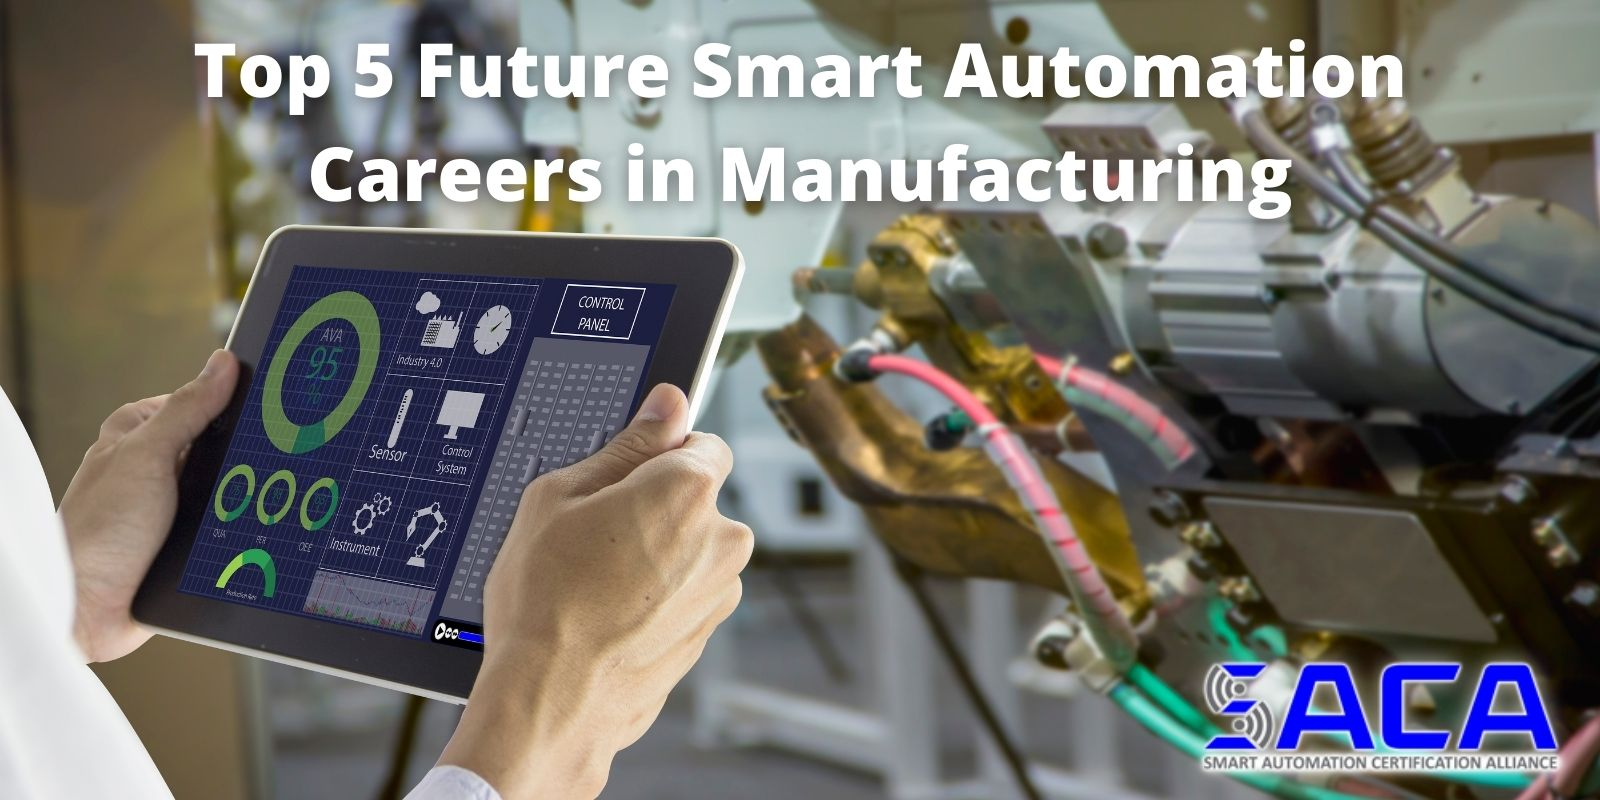 Top 5 Future Smart Automation Careers in Manufacturing - SACA